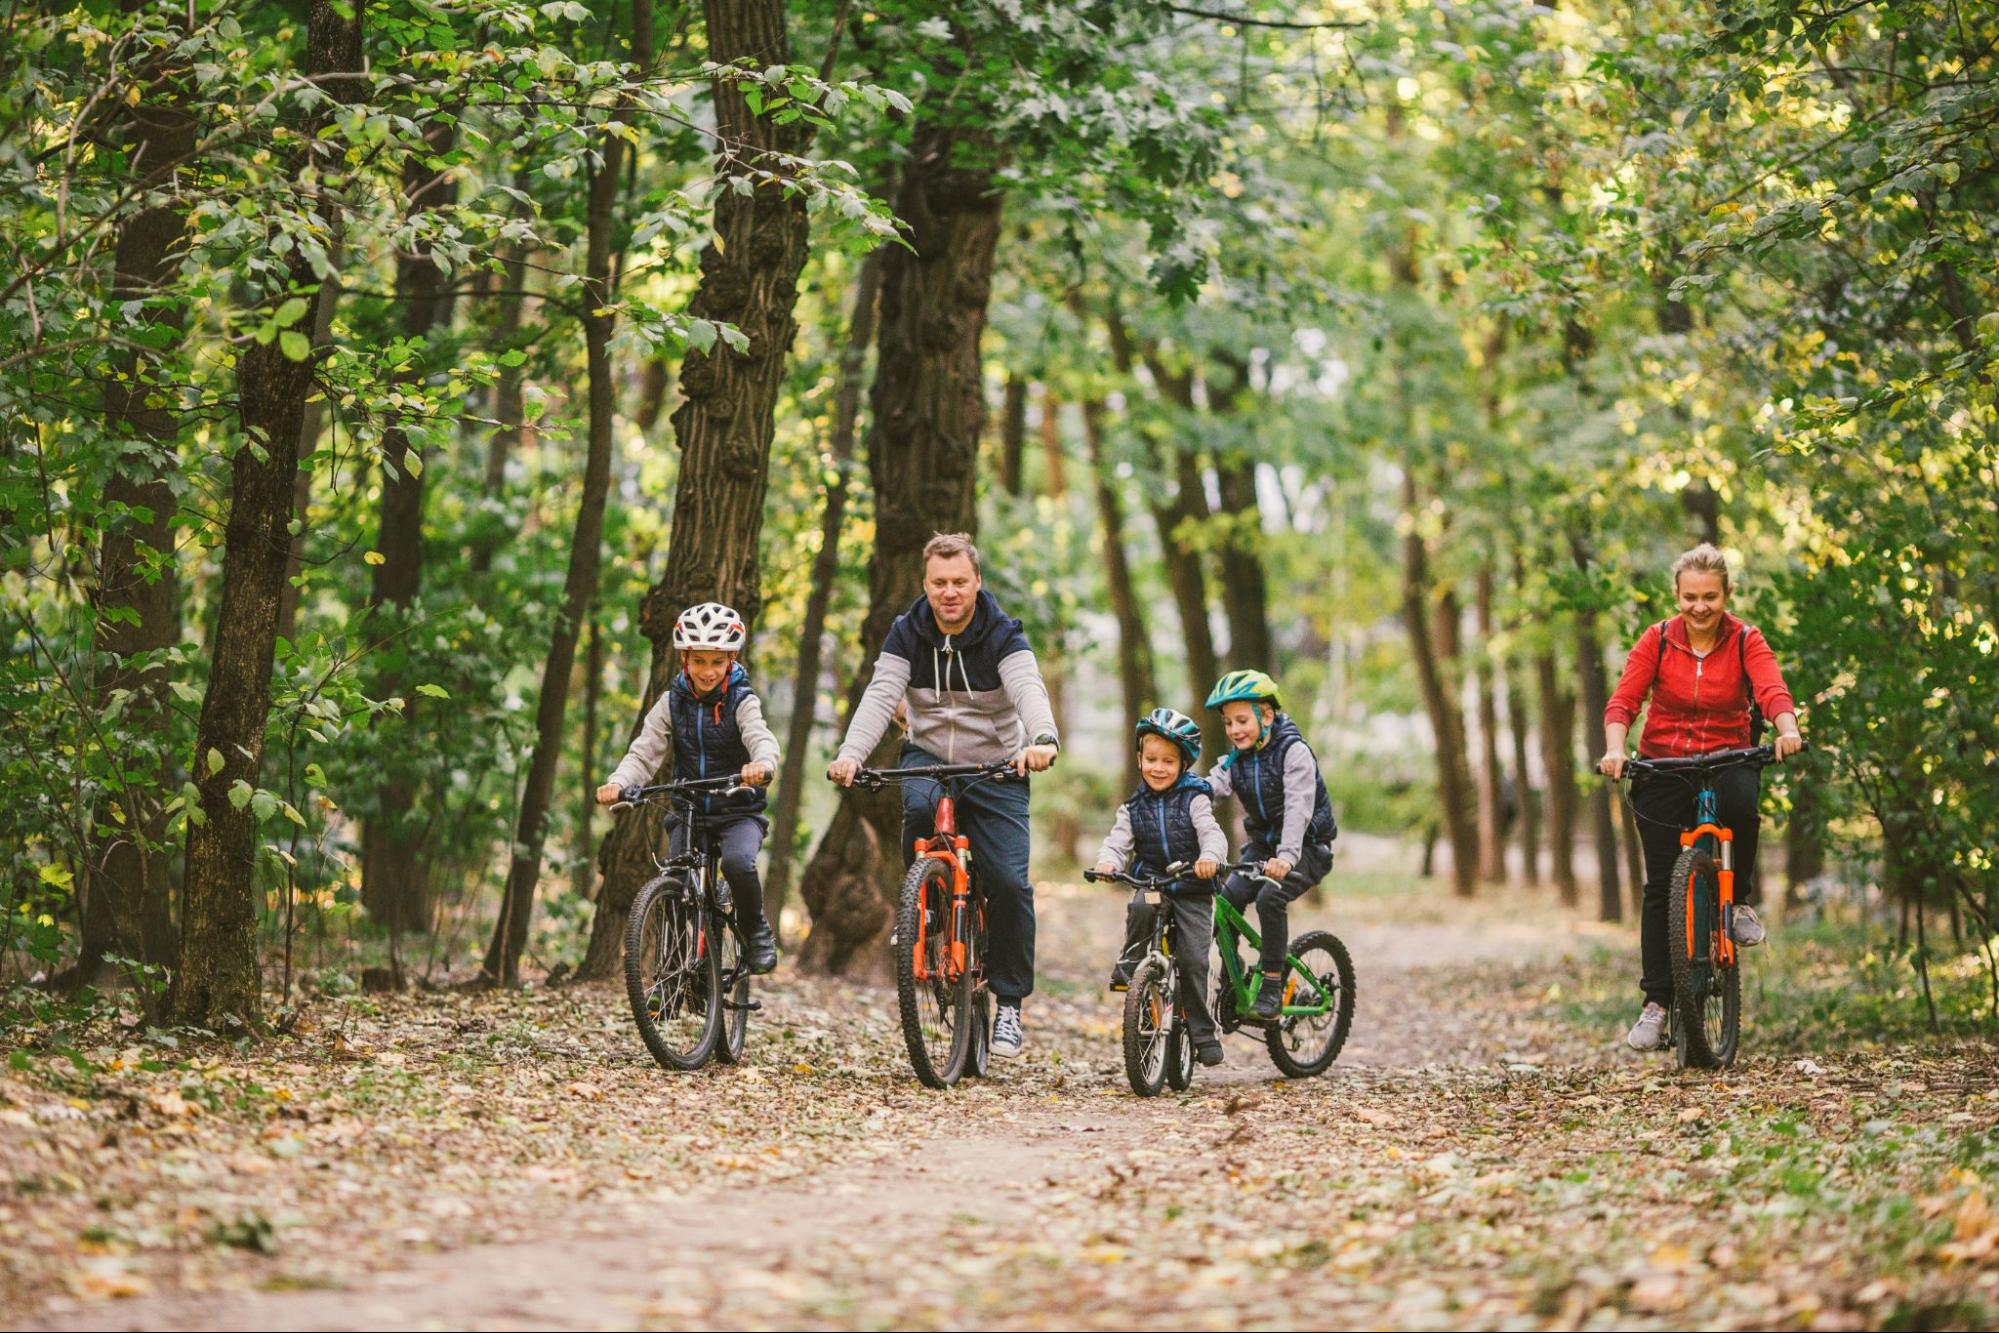 A family goes on a bike ride